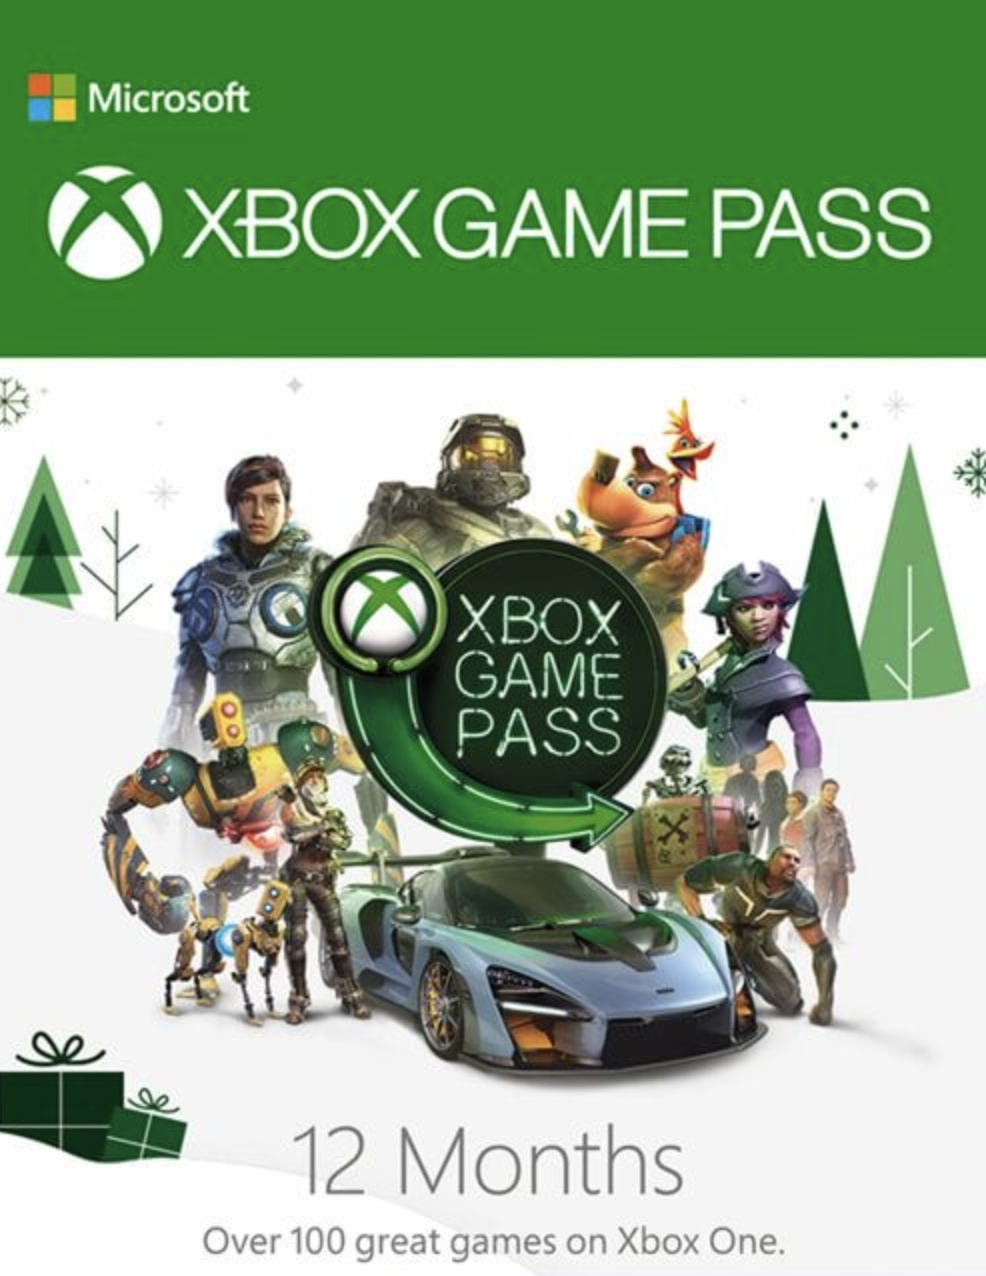 xbox-game-pass-12-months-xbox-one-cover.jpg